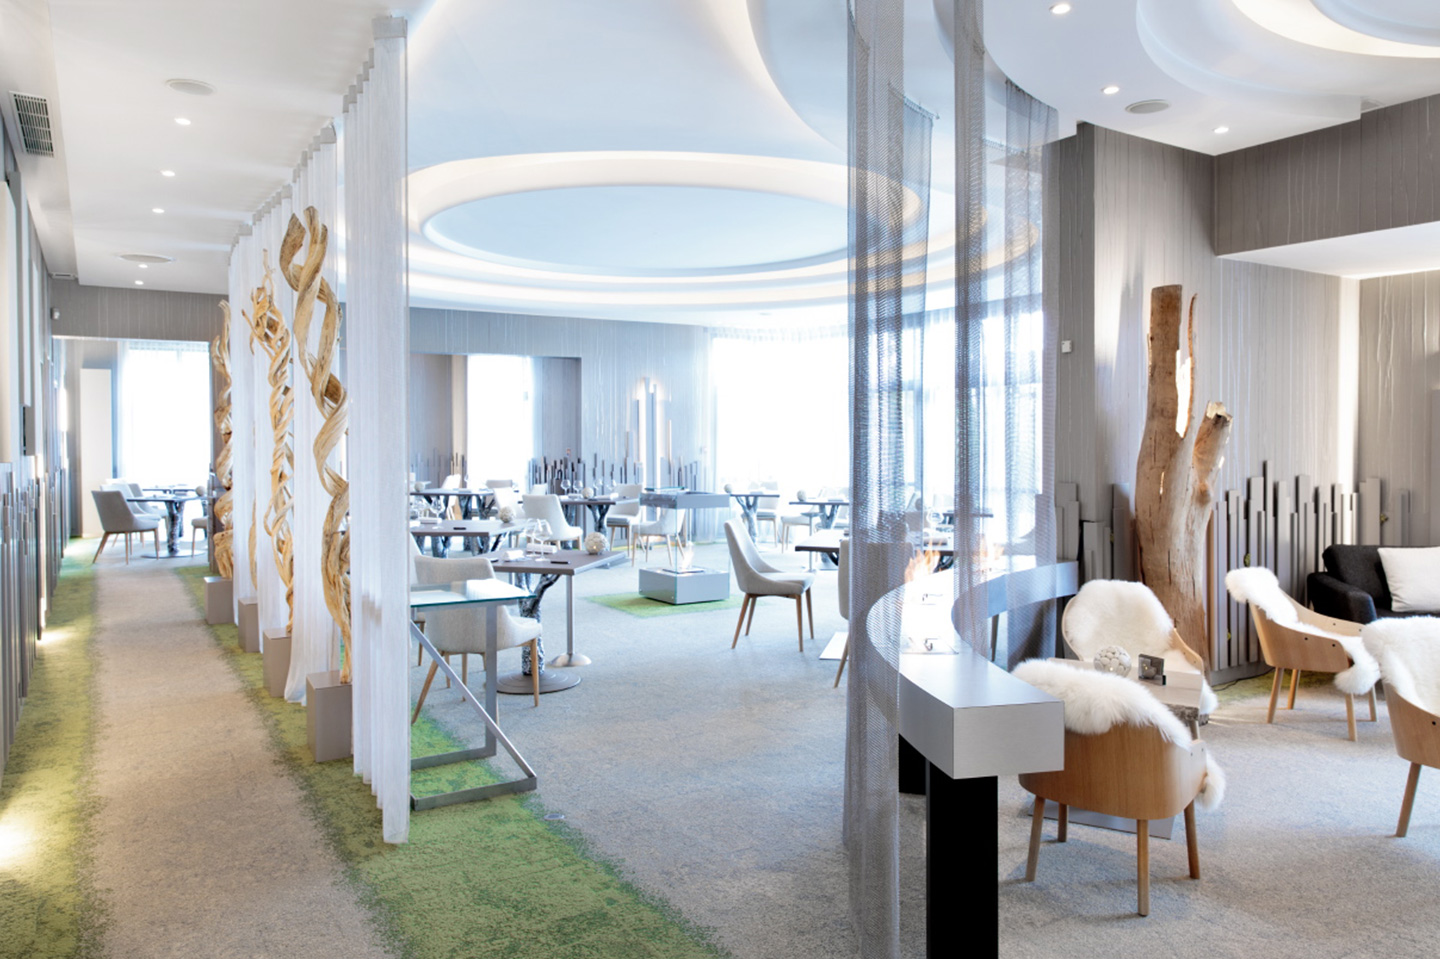 2 michelin star french chef franck putelat from carcassonne is coming to vie - Les tables de franck ...